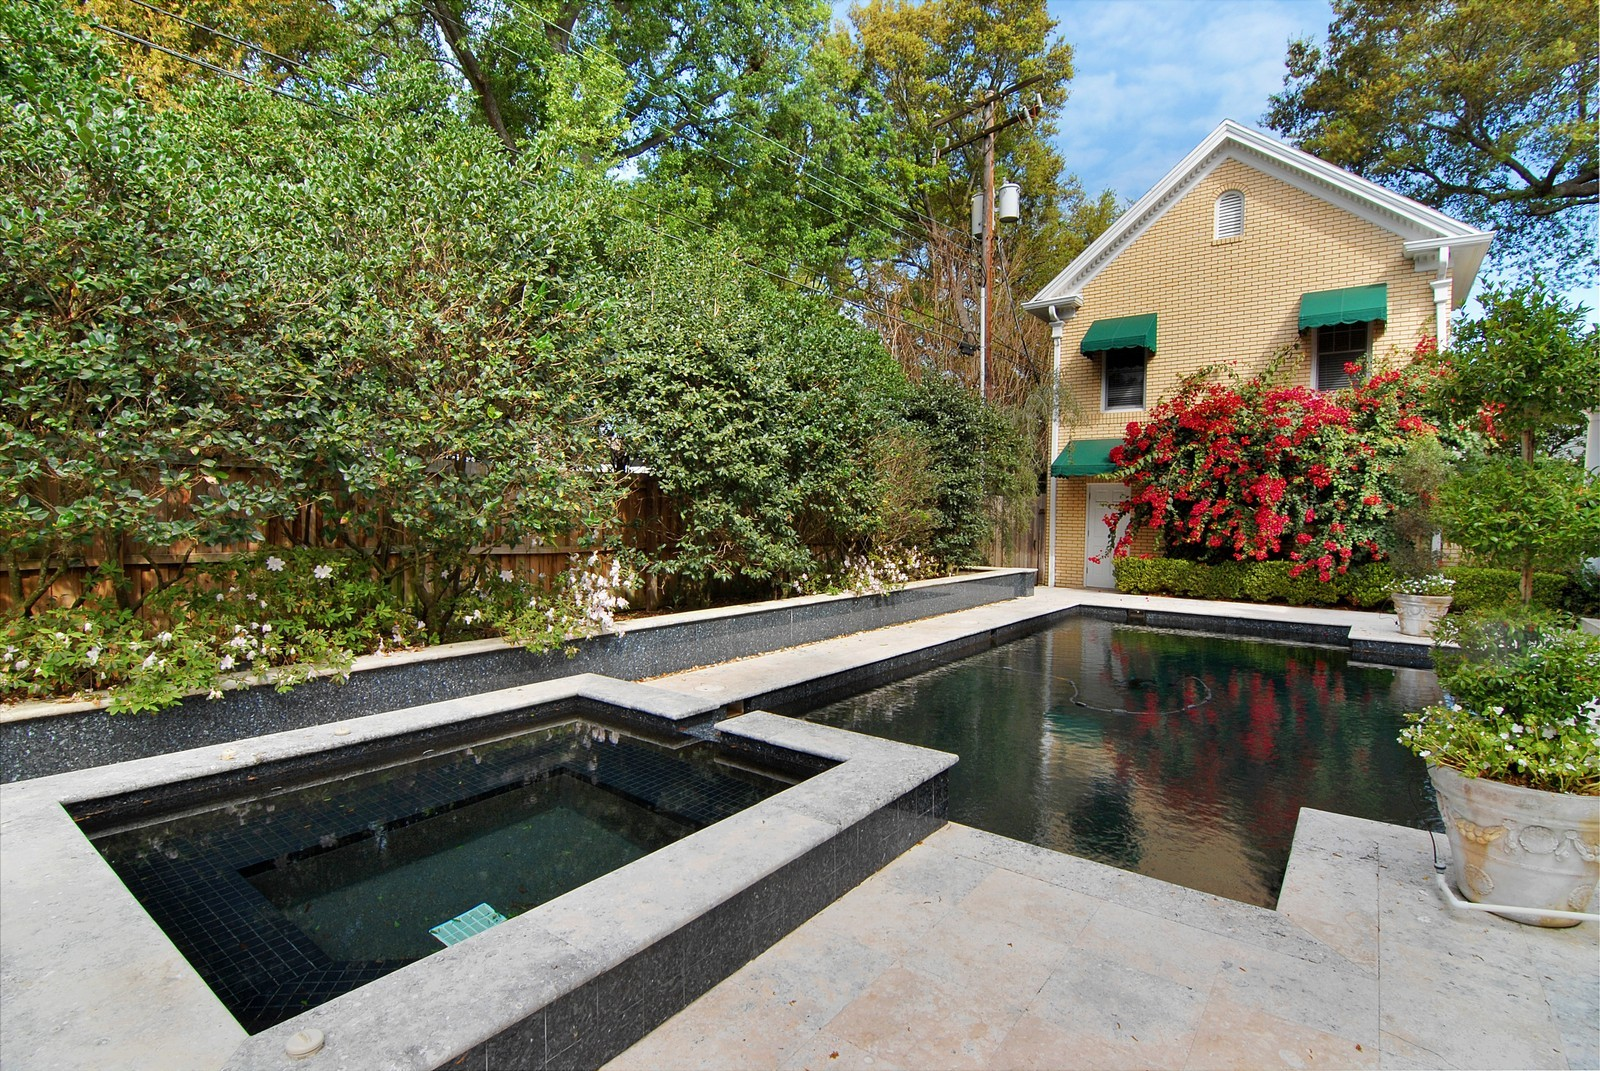 Real Estate Photography - 2223 S. Bendelow Trail, Tampa, FL, 33629 - Pool